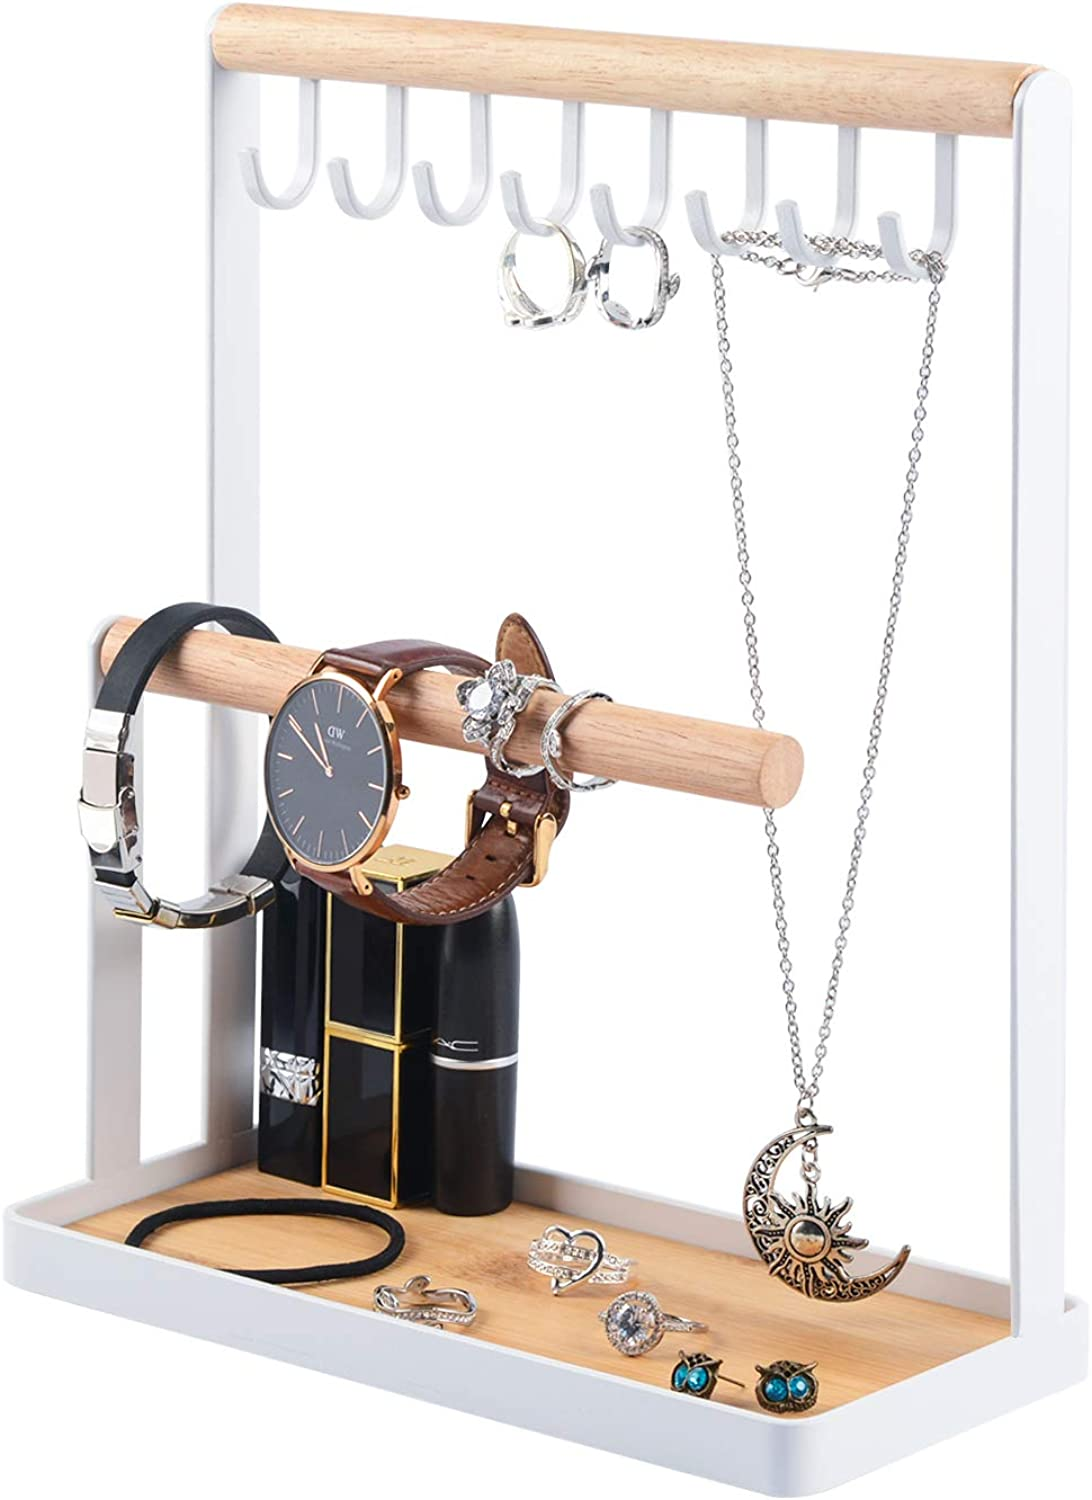 Metal Jewelry Stand Holder Necklace Display Earring Tray Cornmi Wooden Ring Tray And Hooks Storage Necklaces Bracelets Rings Watches Desk Organizer Amazon Ca Jewelry